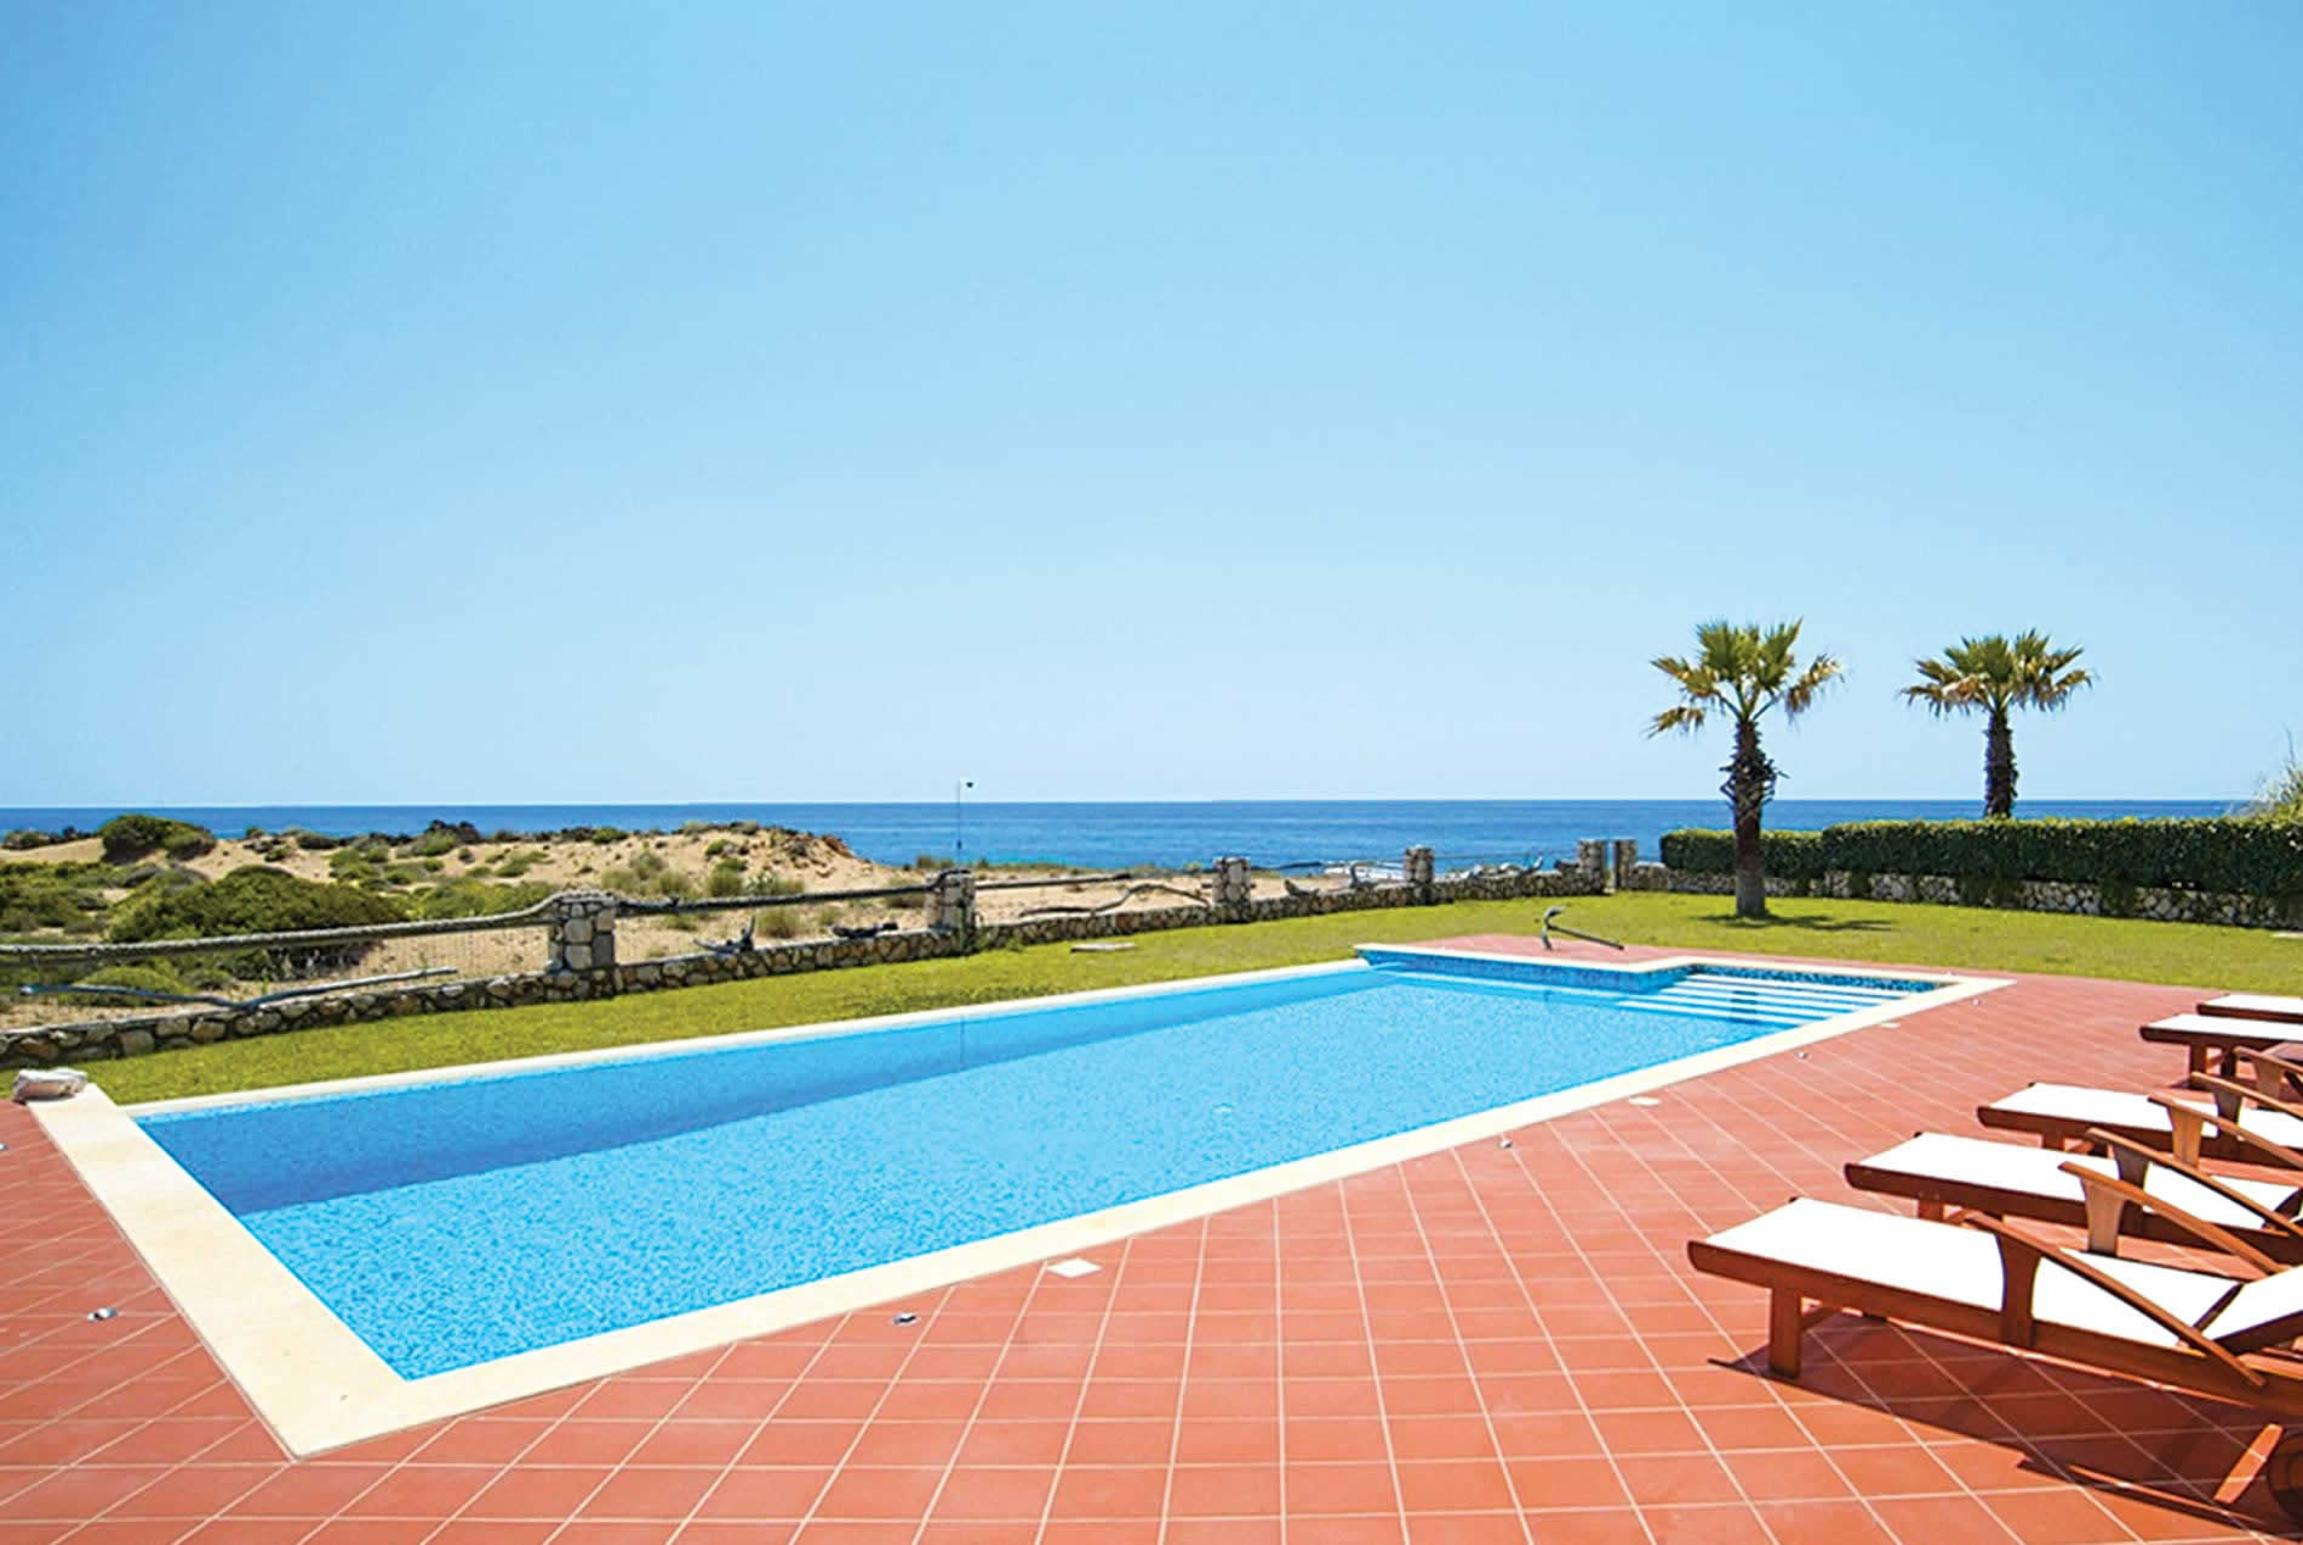 Read more about Sunset villa